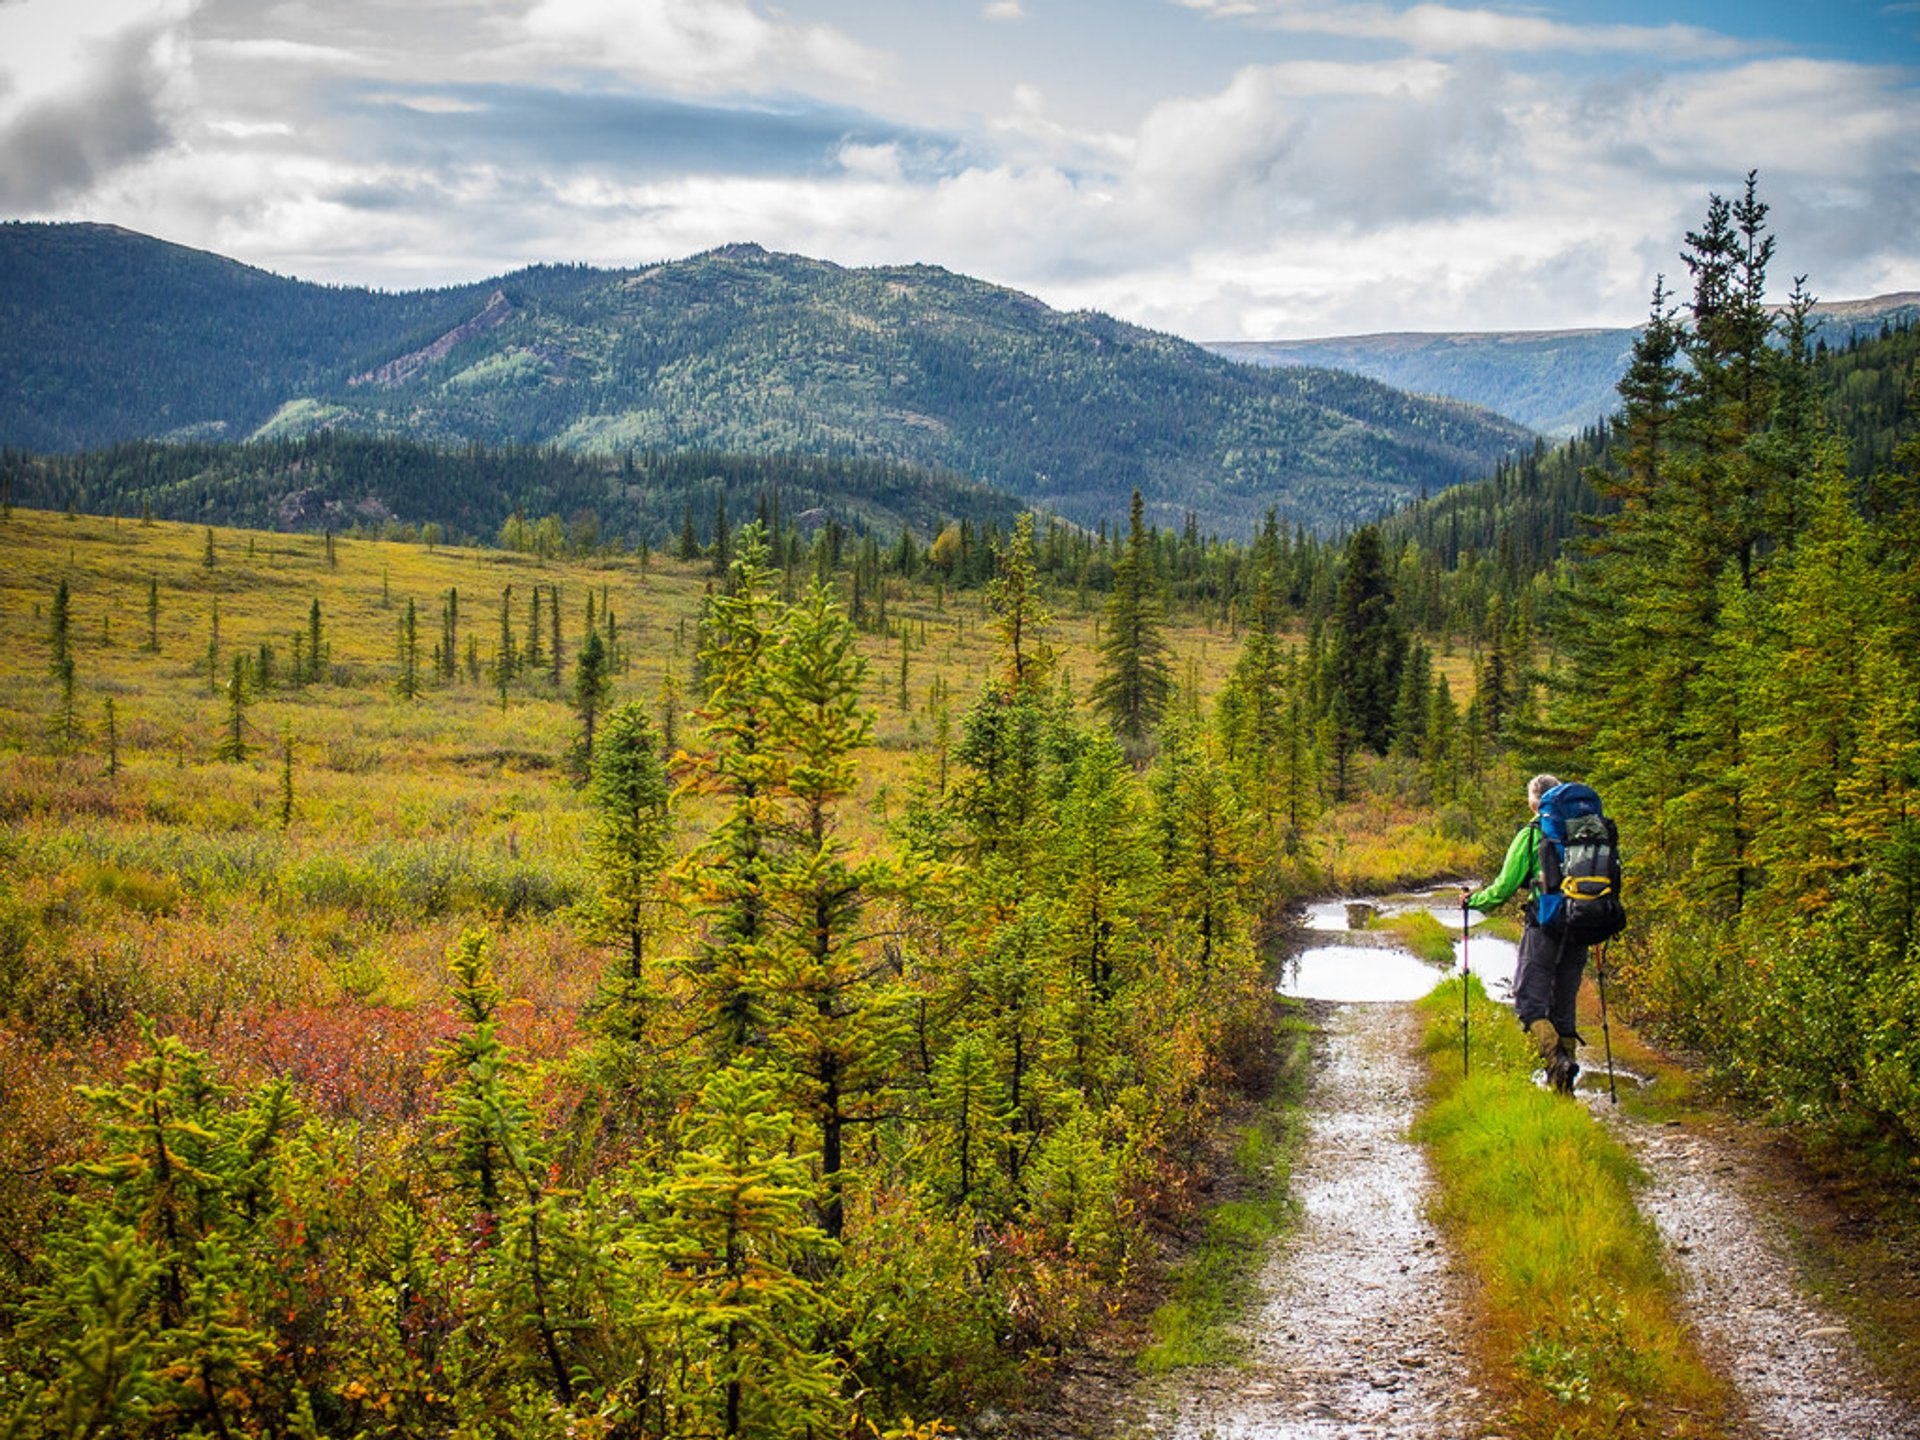 Hiking the Stampede Trail 2020